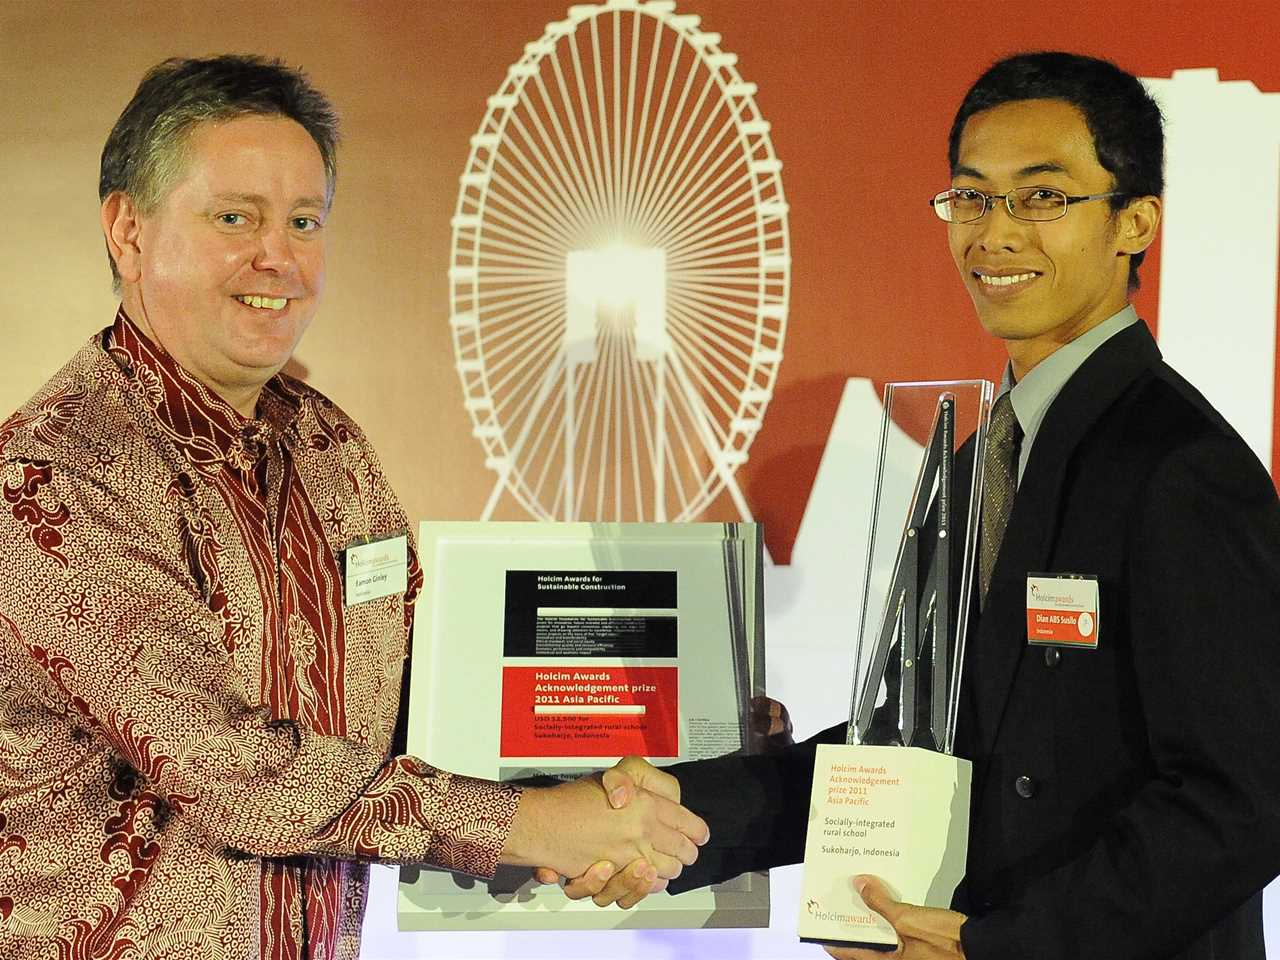 "Presentation of Holcim Awards 2011 Acknowledgement prize for ""Socially-integrated rural school, …"